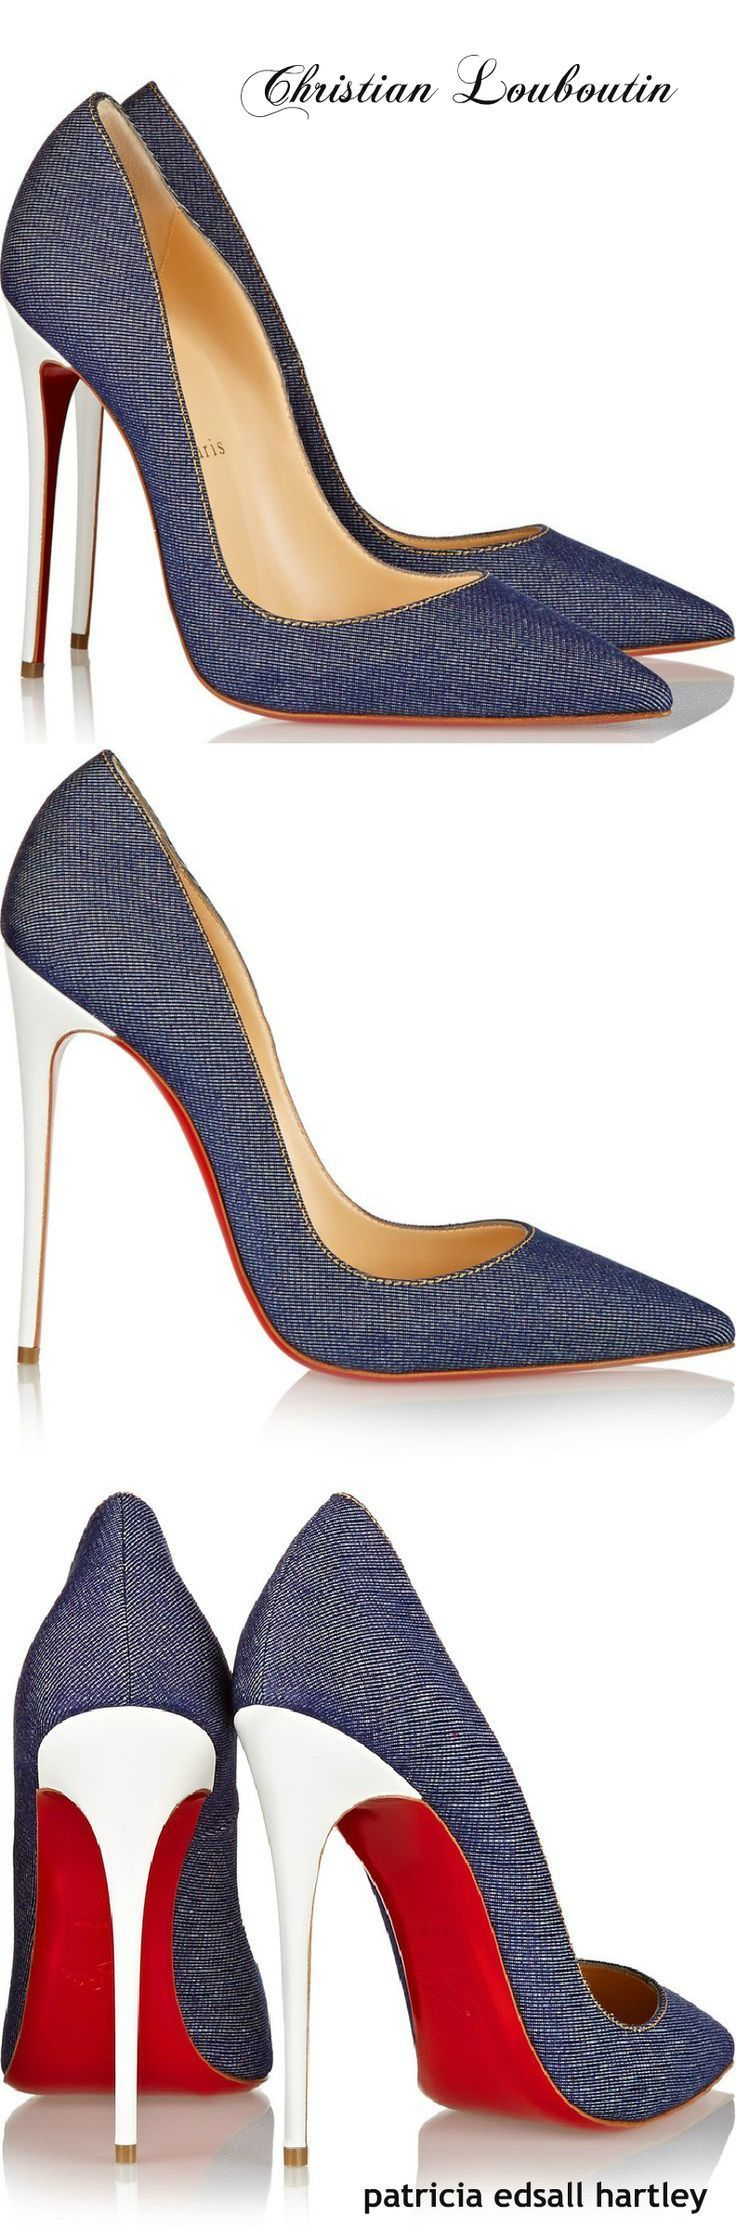 Red, White & Blue Denim Christian Louboutin Pumps by Patricia Edsall Hartley